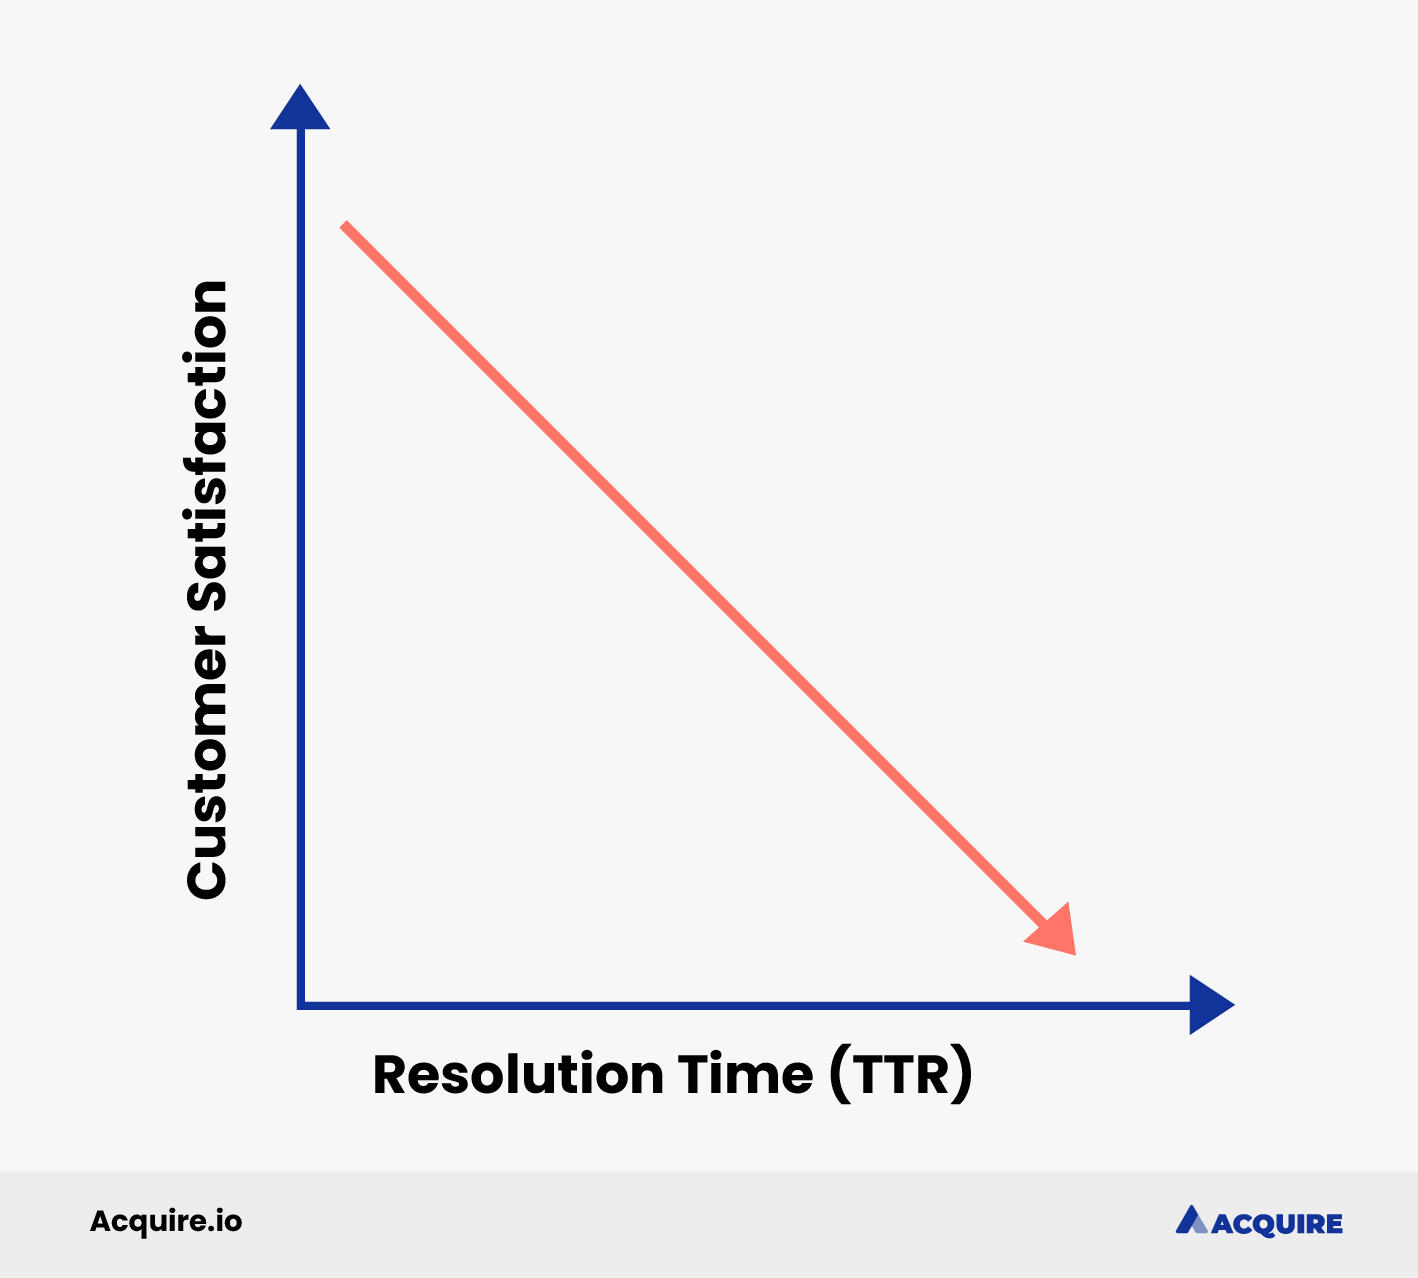 Customer satisfaction decreases as time to resolution increases graph illustration